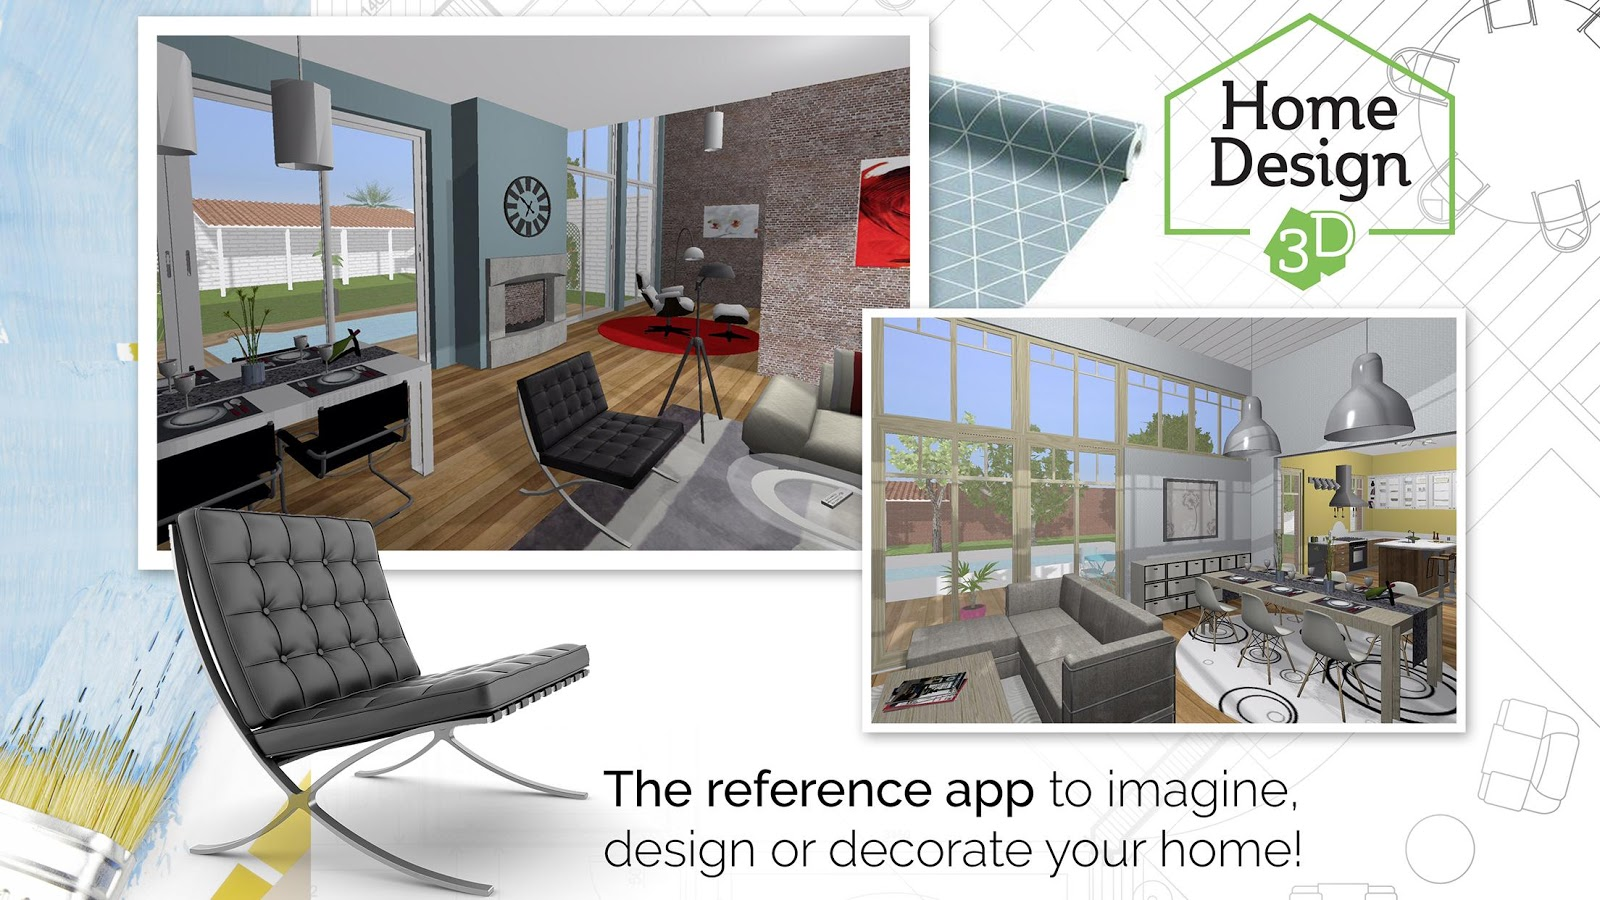 Home design d freemium android apps on google play